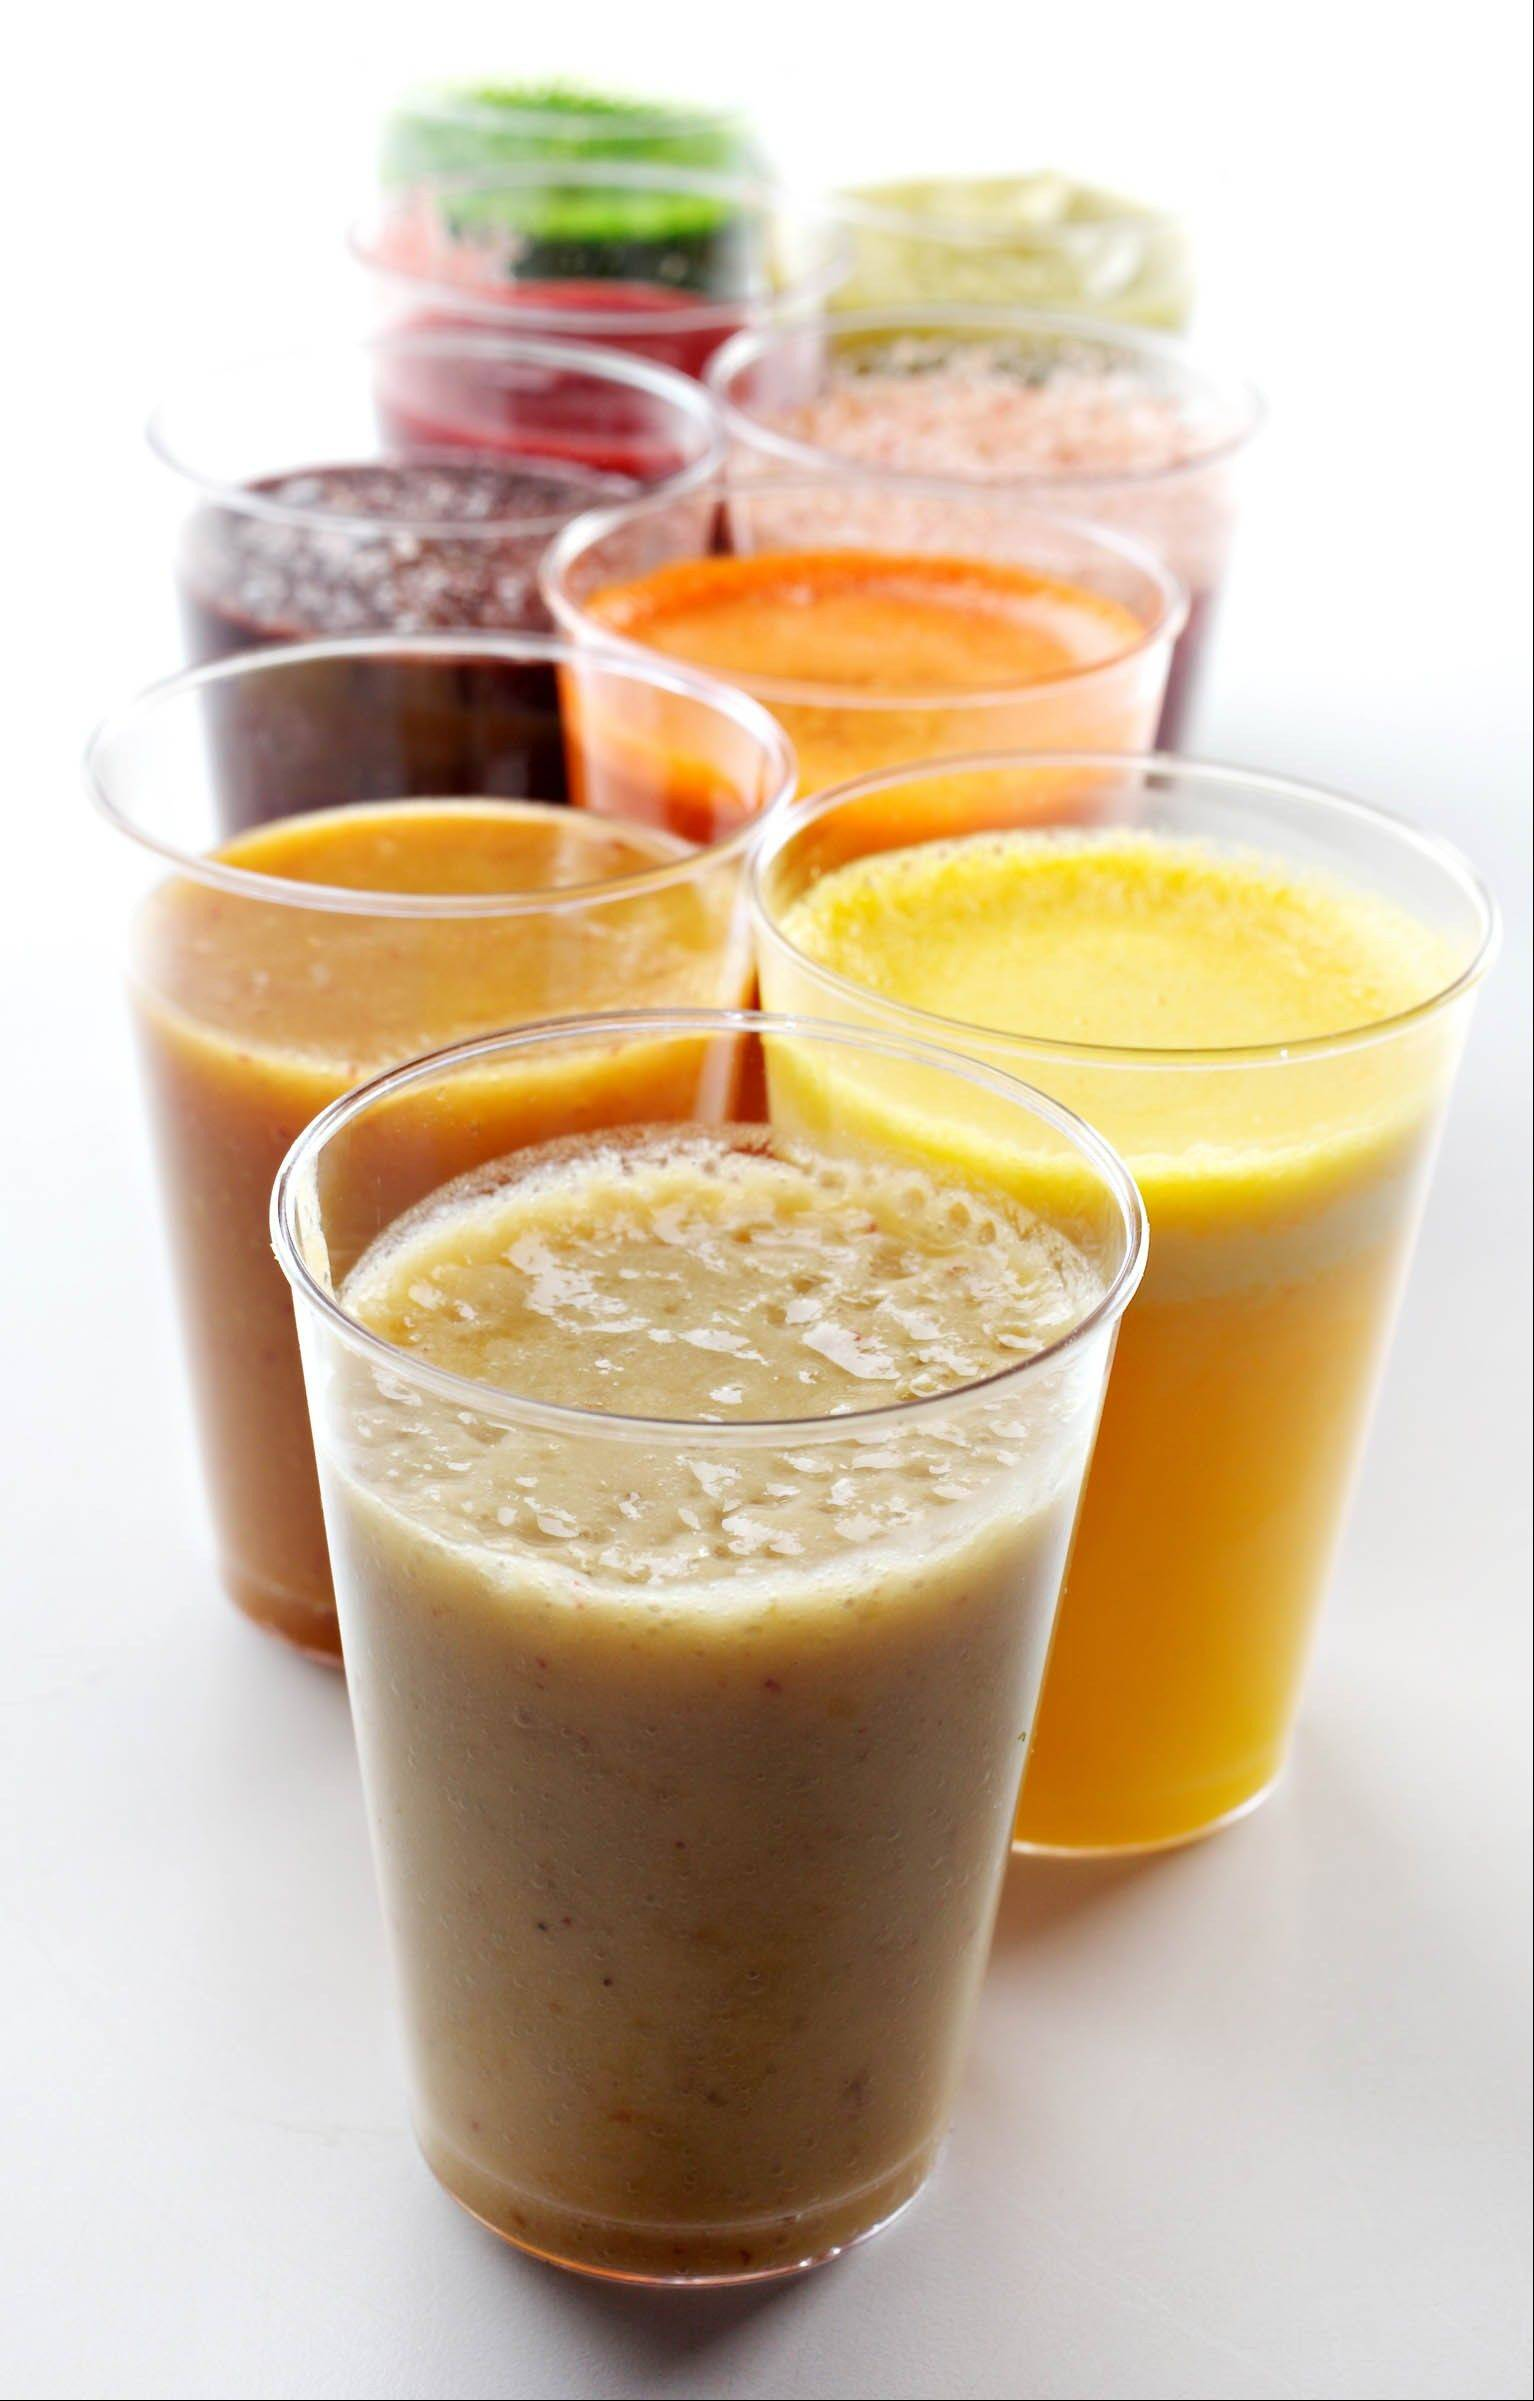 Juicer or blender? Either way, a glass of fruits and vegetables is a good way to start the day -- and use up what you've got in the refrigerator.